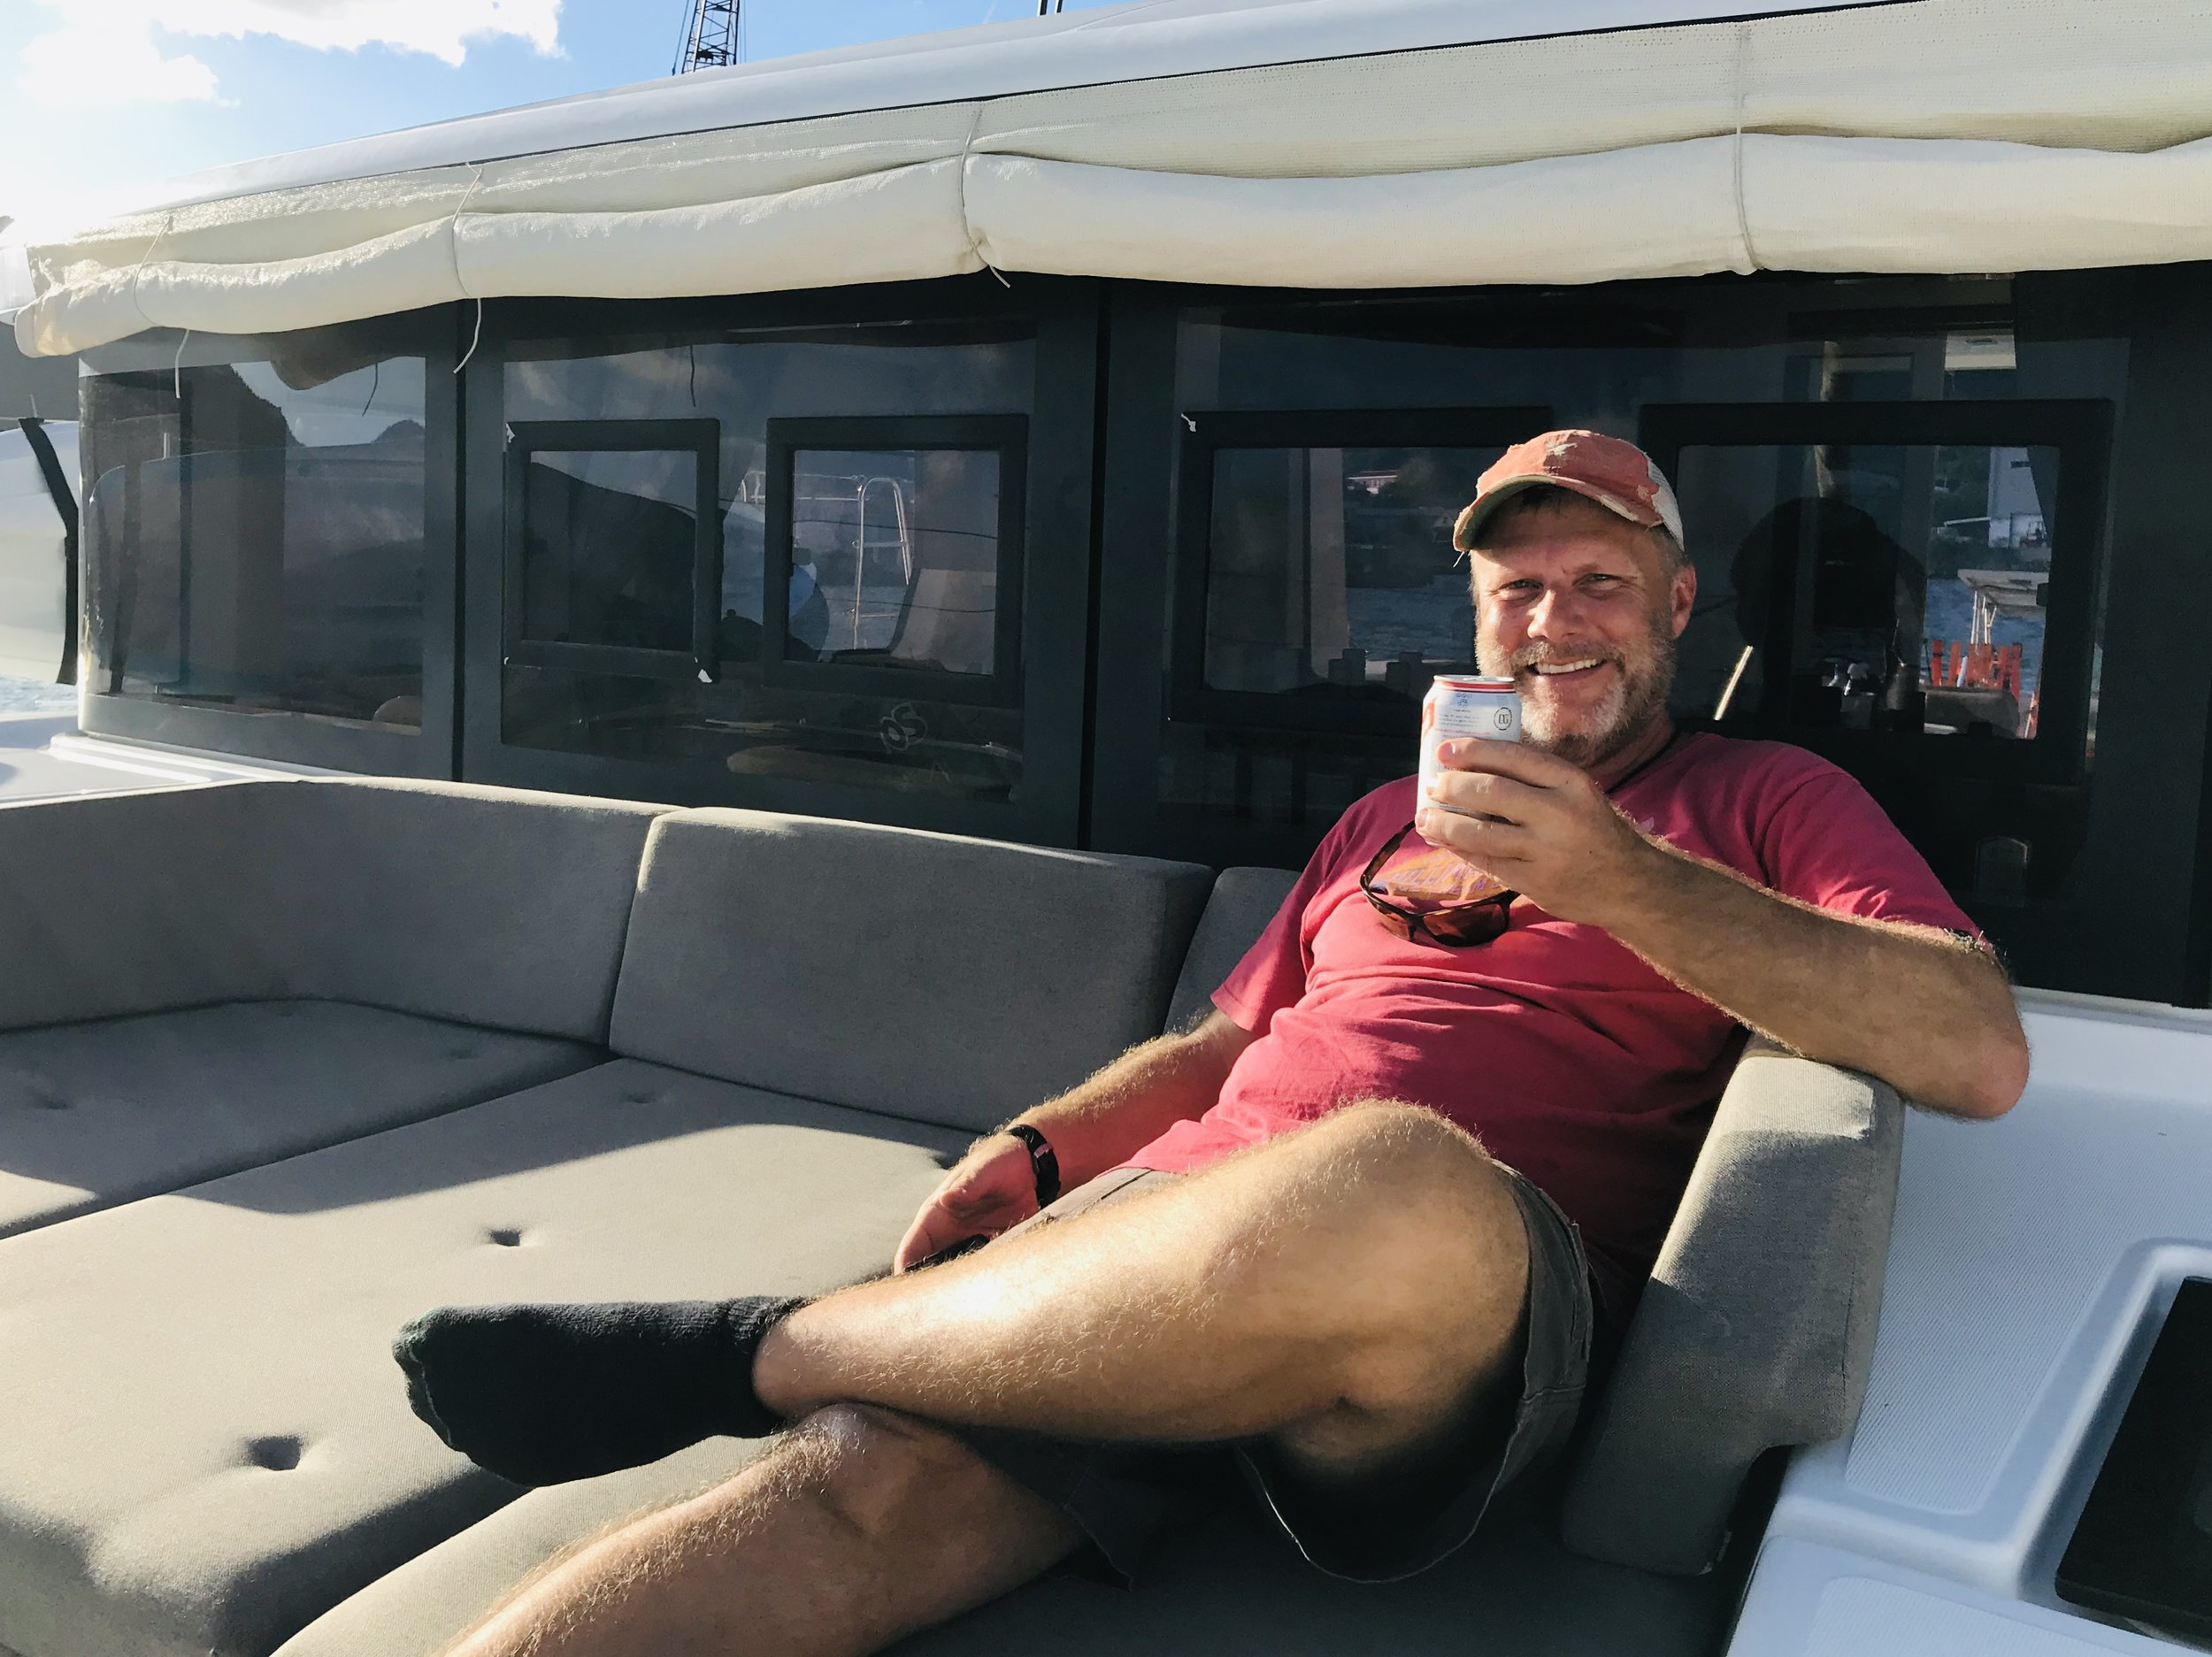 Jason taking just a minute to relax on his vessel charge for the week.